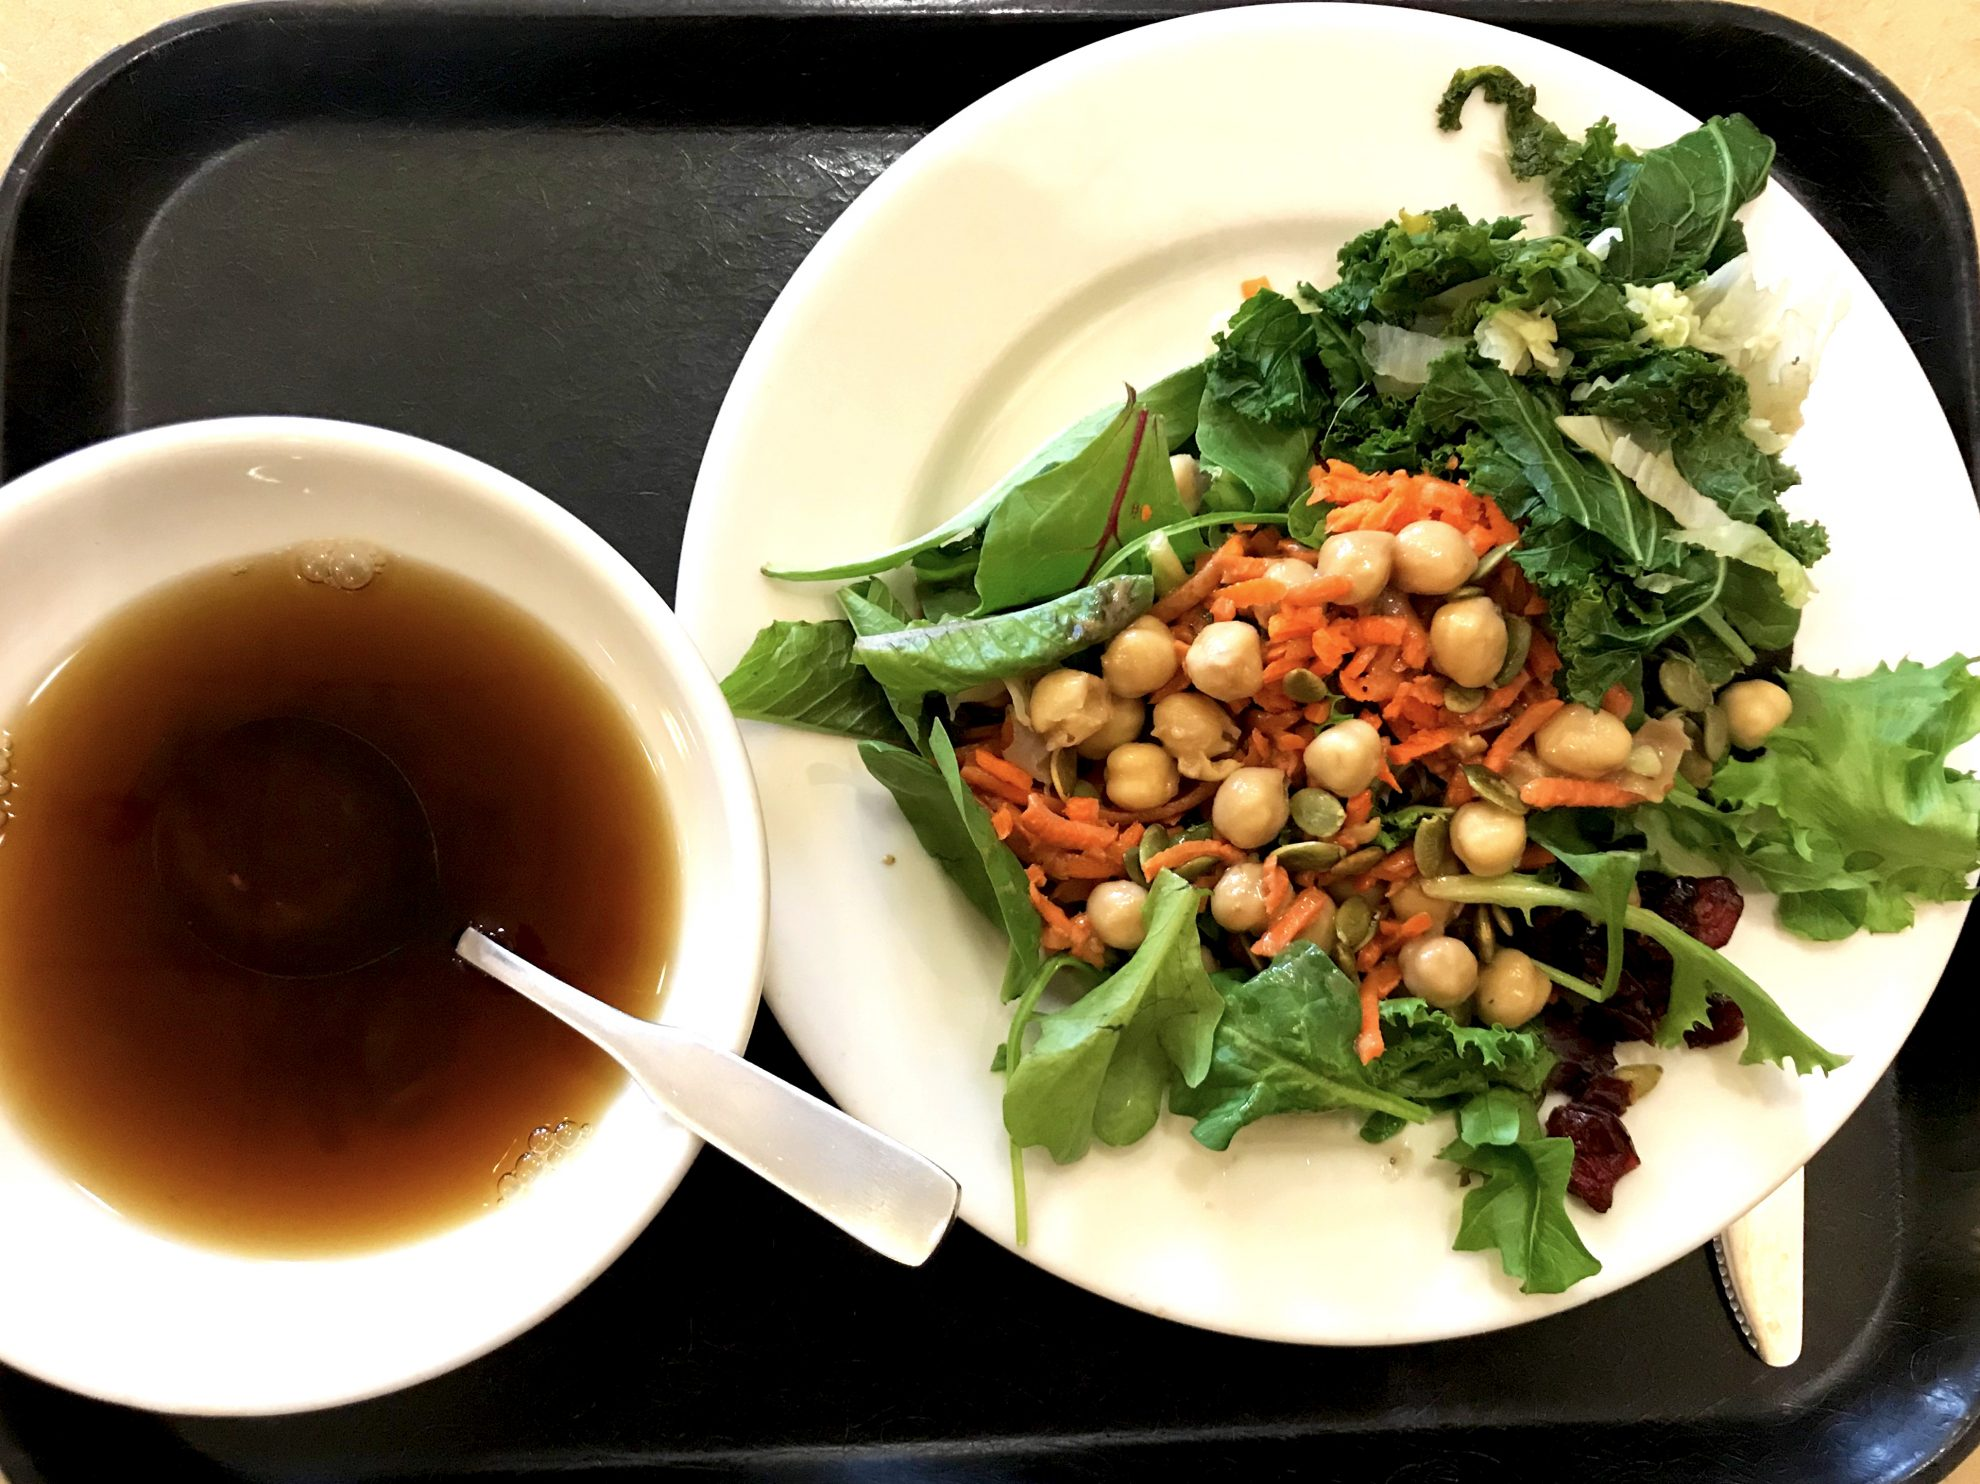 Kripalu Center reviews of the food offered at Kripalu Center for Yoga and Health- salad and soup for lunch